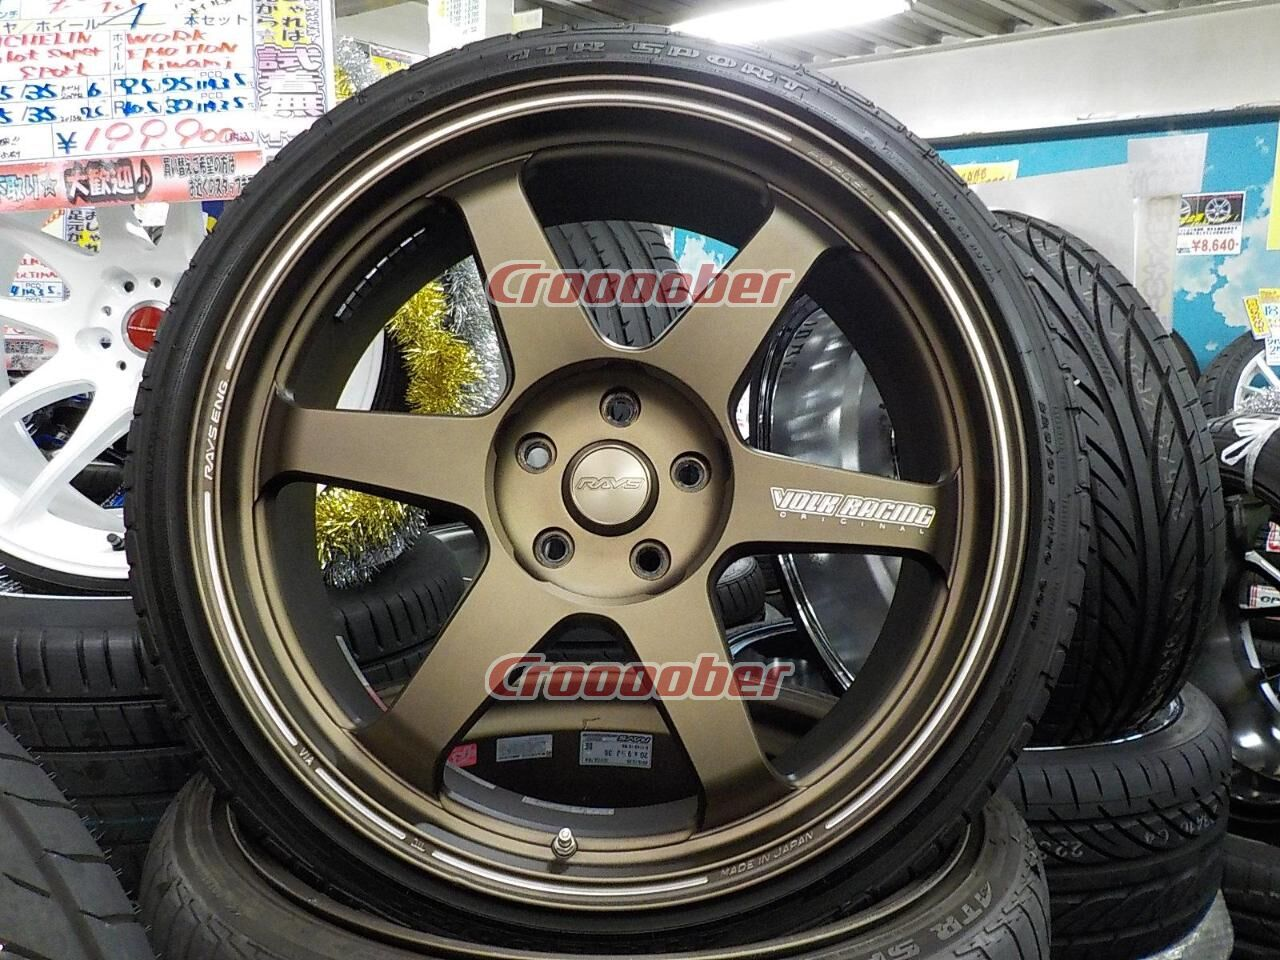 ★ Which Made Known Name Forging New Of The Spoke Wheel! ★ RAYS VOLK TE37 Ultra - Front:8.5Jx20+36 Rear:9.5Jx20+36114.3-5H for Sale | Croooober Japan